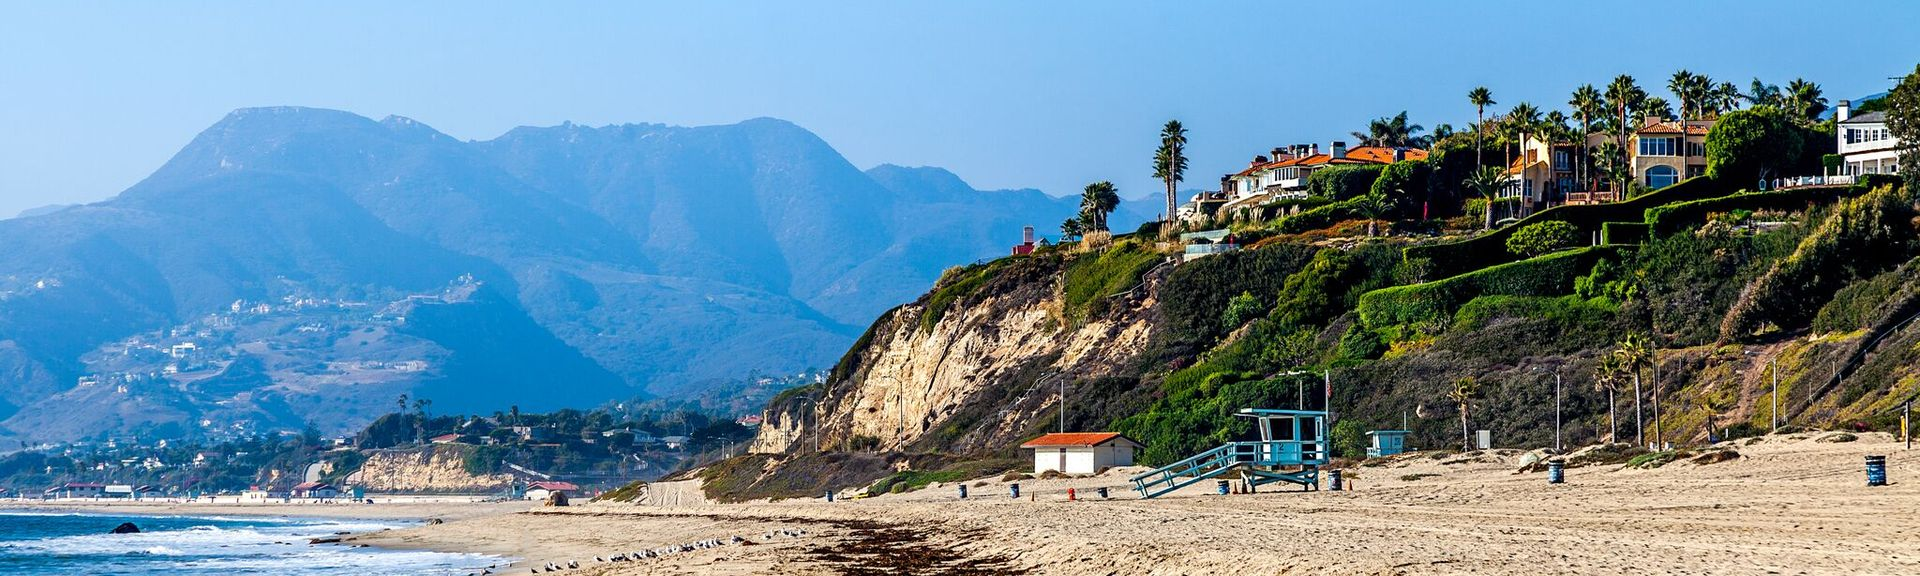 Malibu, California, USA